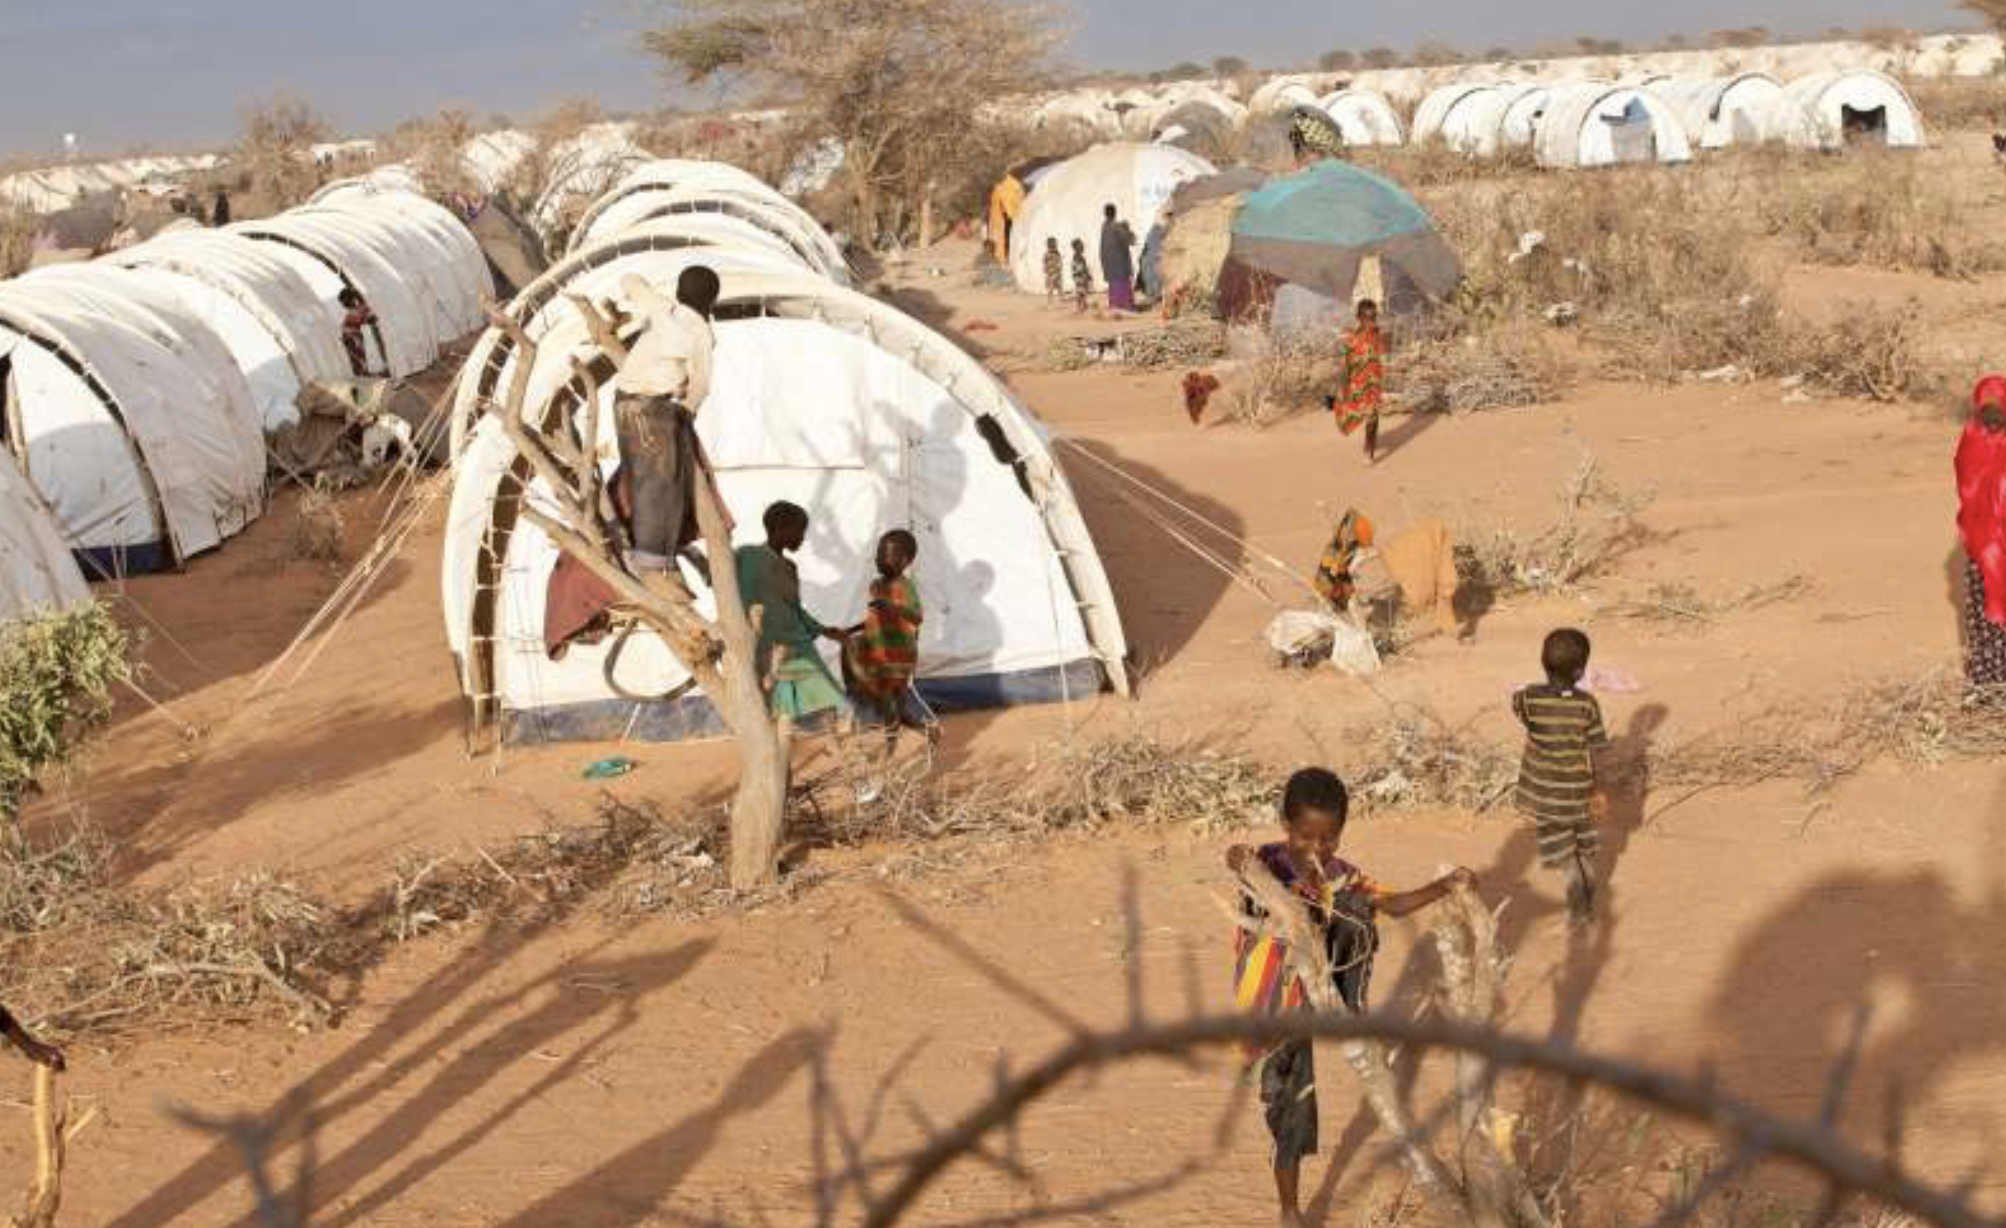 Somali refugee children play around their shelters in Kenya's Dadaab refugee camp, third largest in the world. 2015 (Photo by B. Bannon courtesy UNHCR)